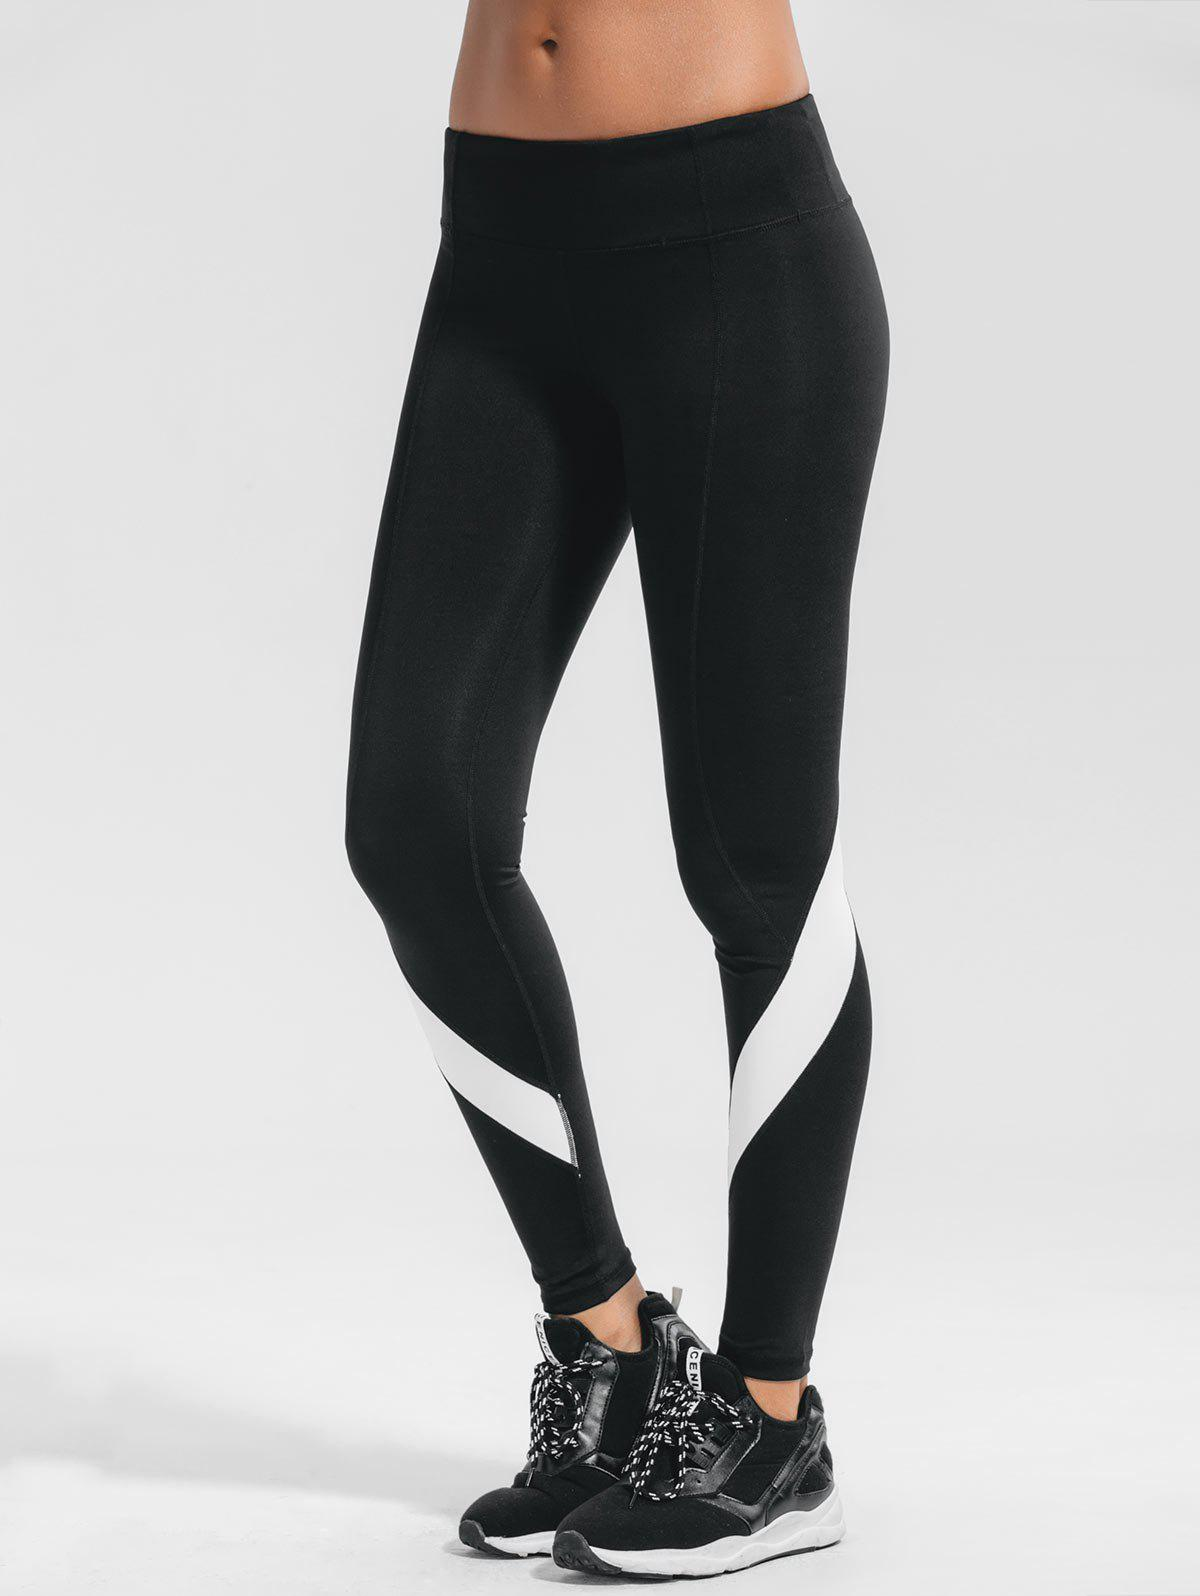 Stretchy Color Block Active Yoga Pants 216967001